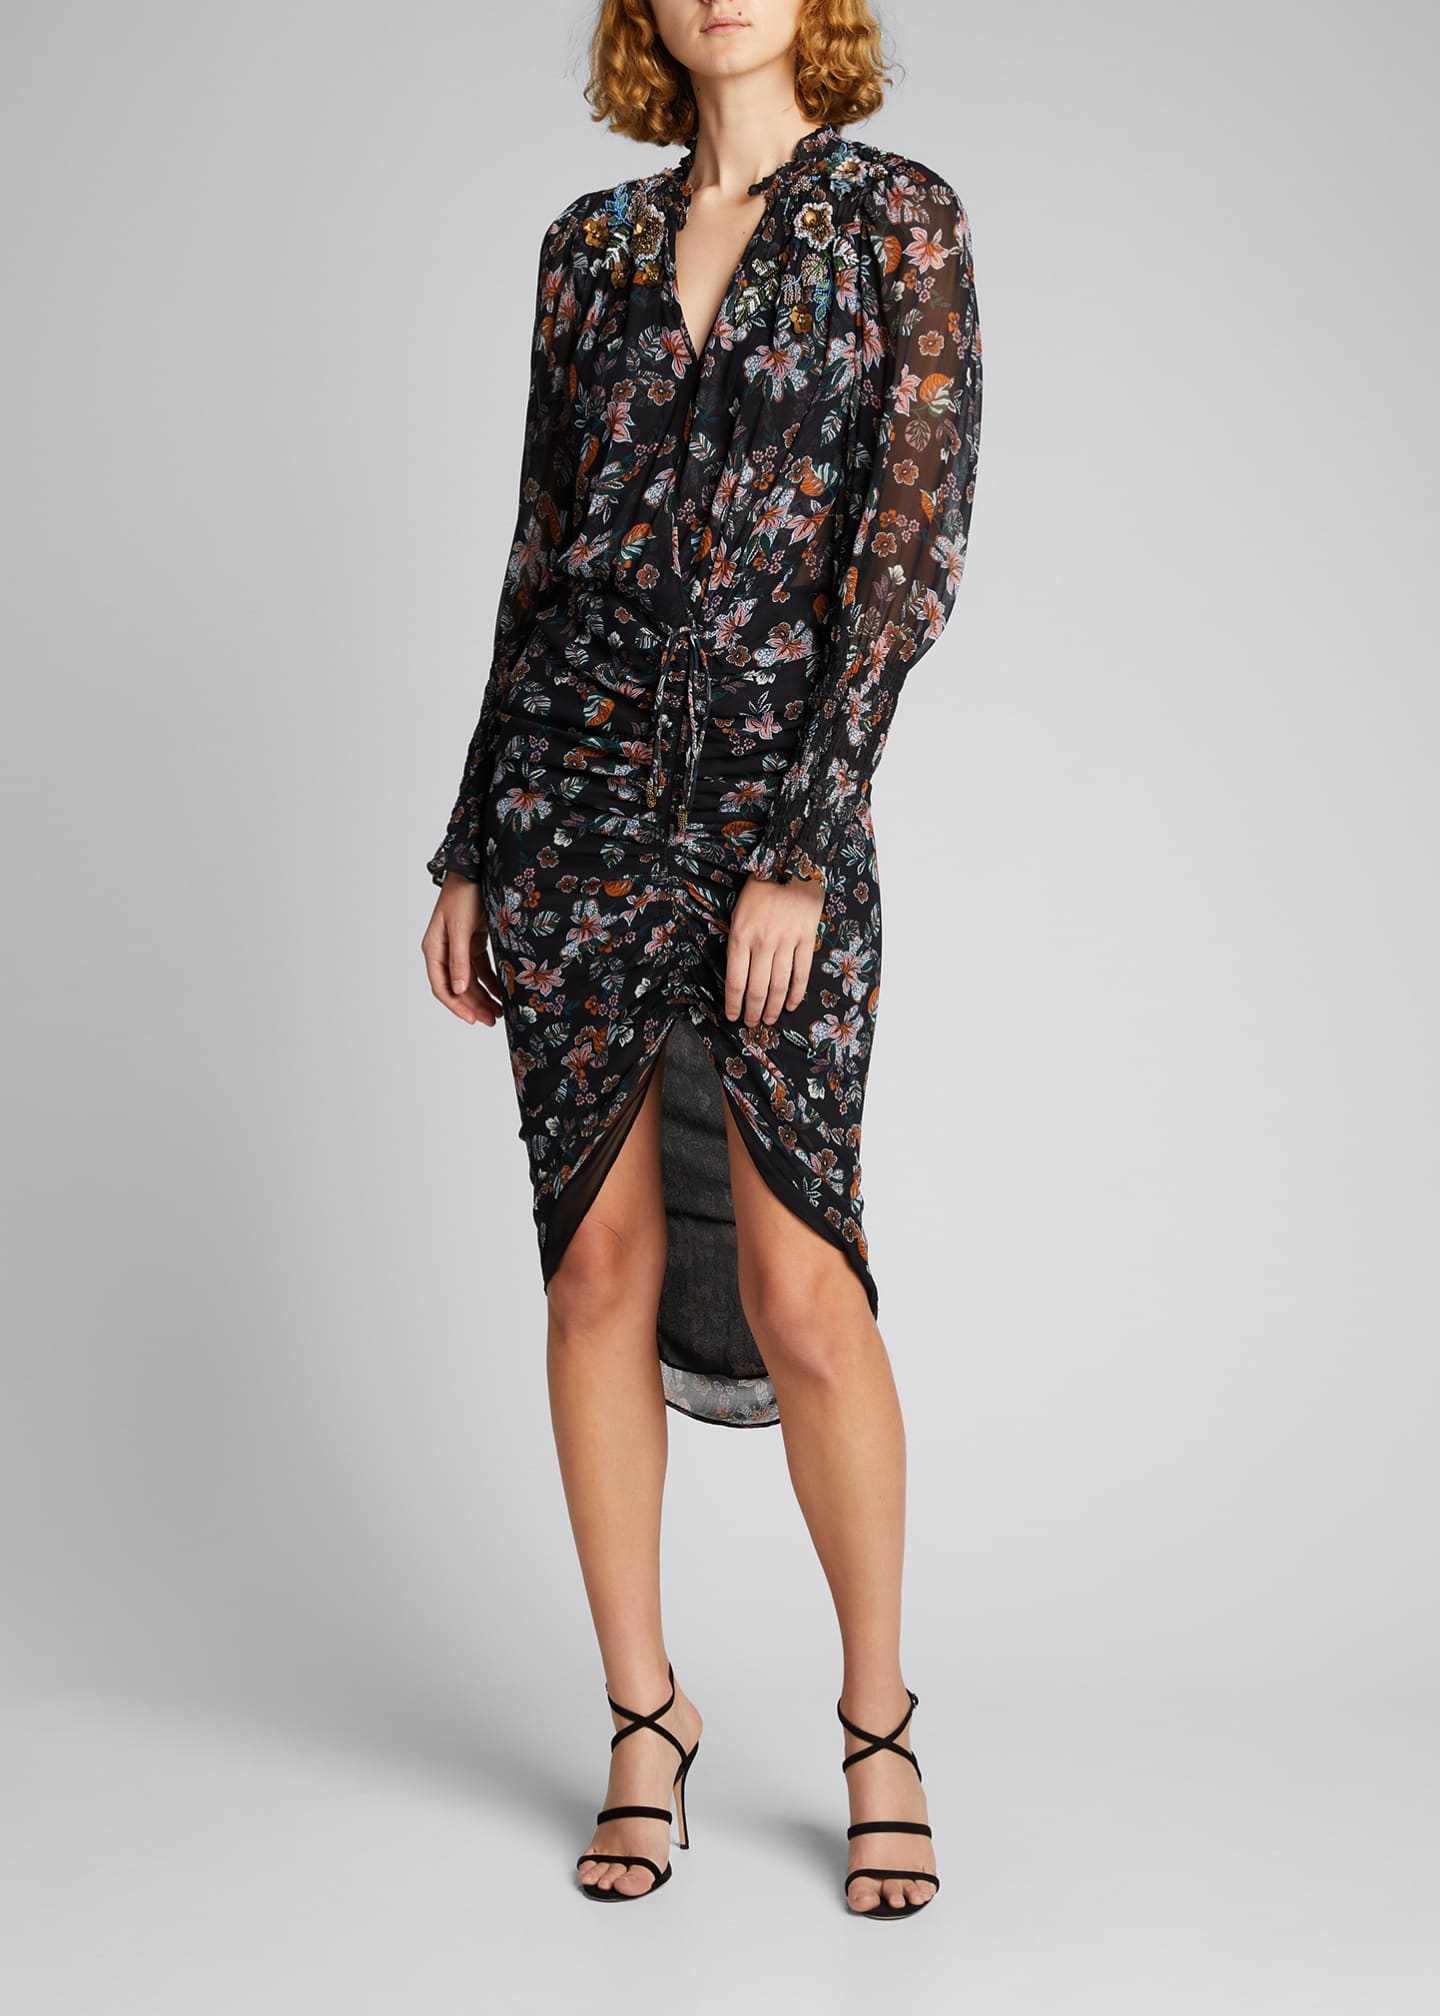 Image 1 of 5: Shaia Floral Ruched Dress